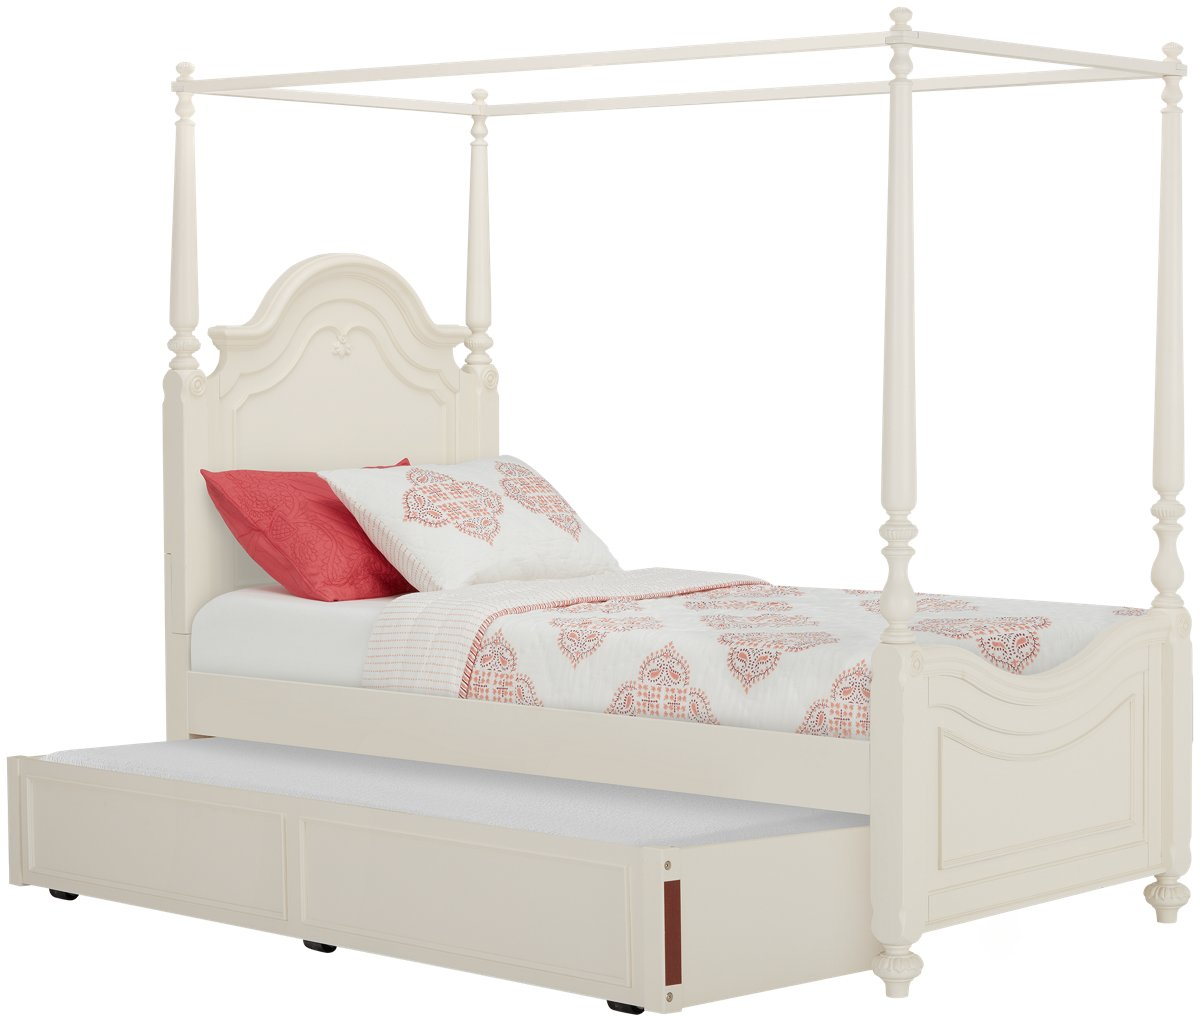 Image Result For Tale Beds